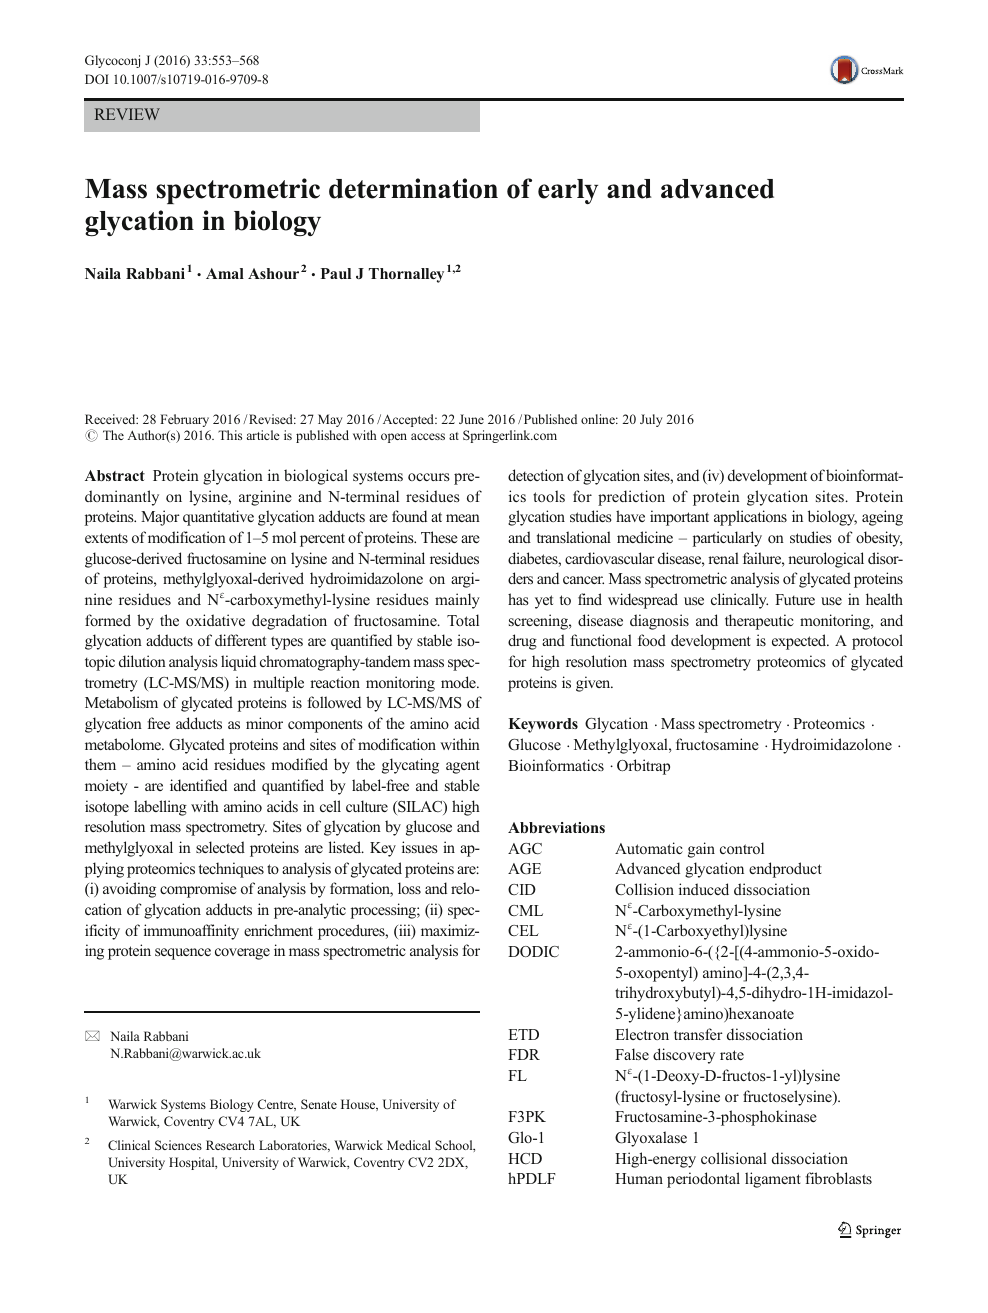 Mass spectrometric determination of early and advanced glycation in